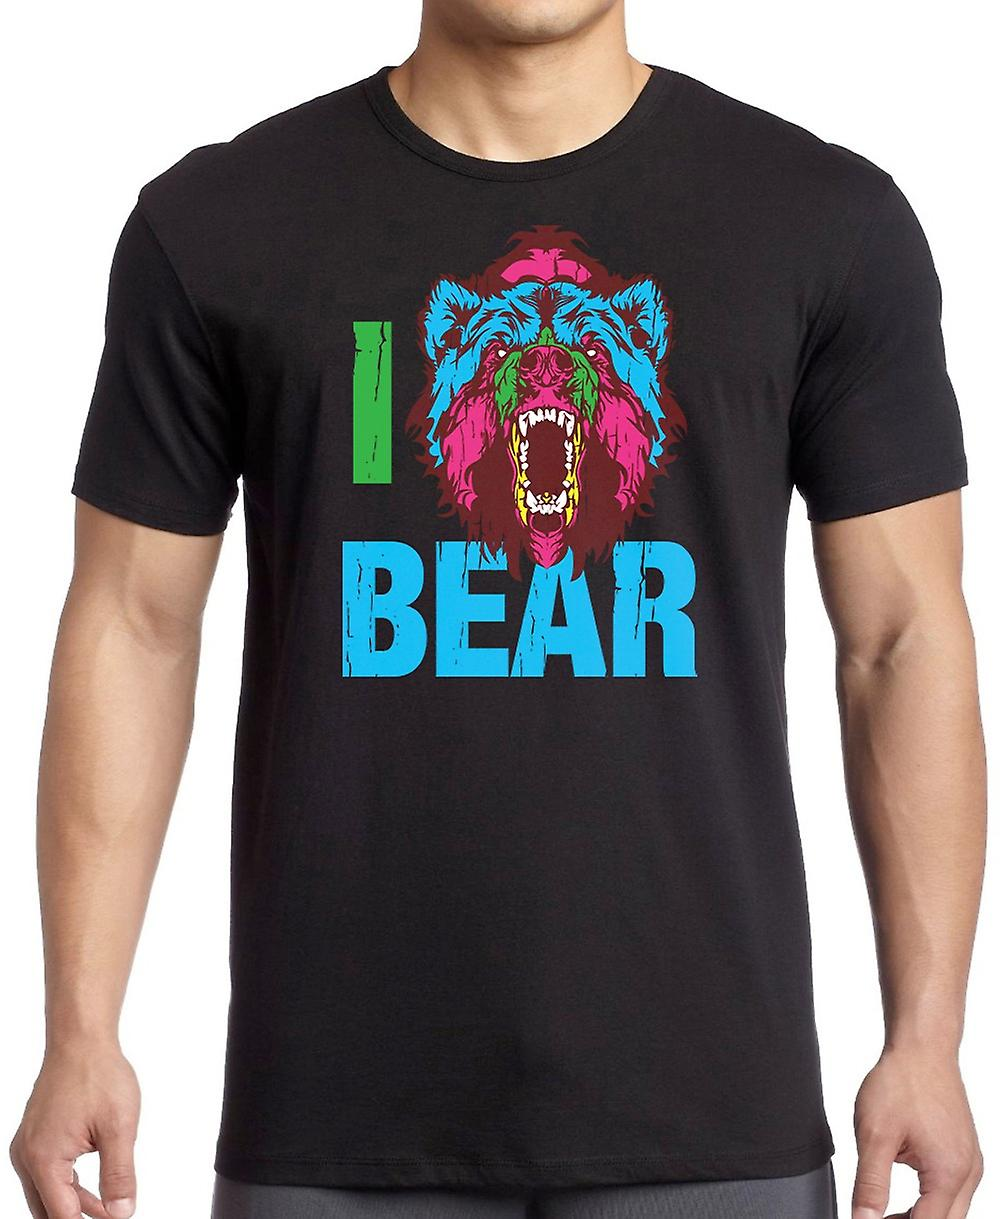 I Love Bears - Cool T Shirt